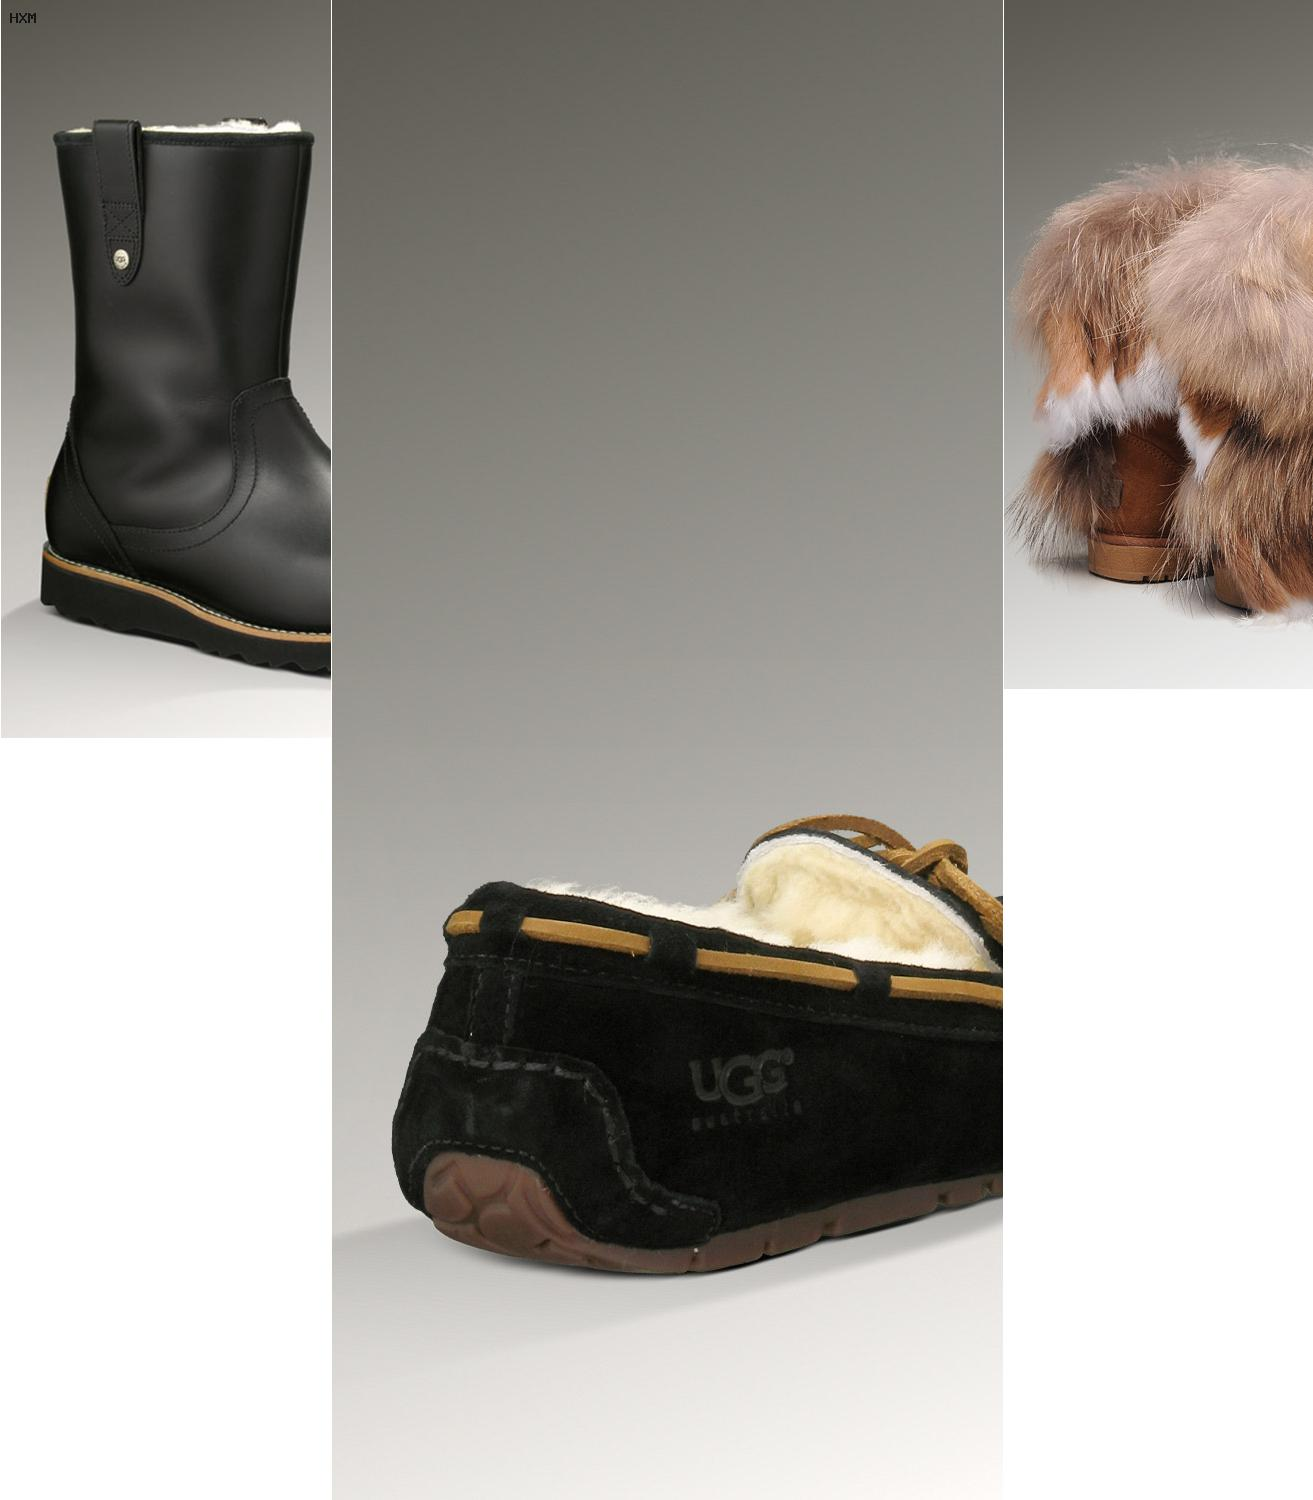 finest selection d9591 32a53 ugg boots fell